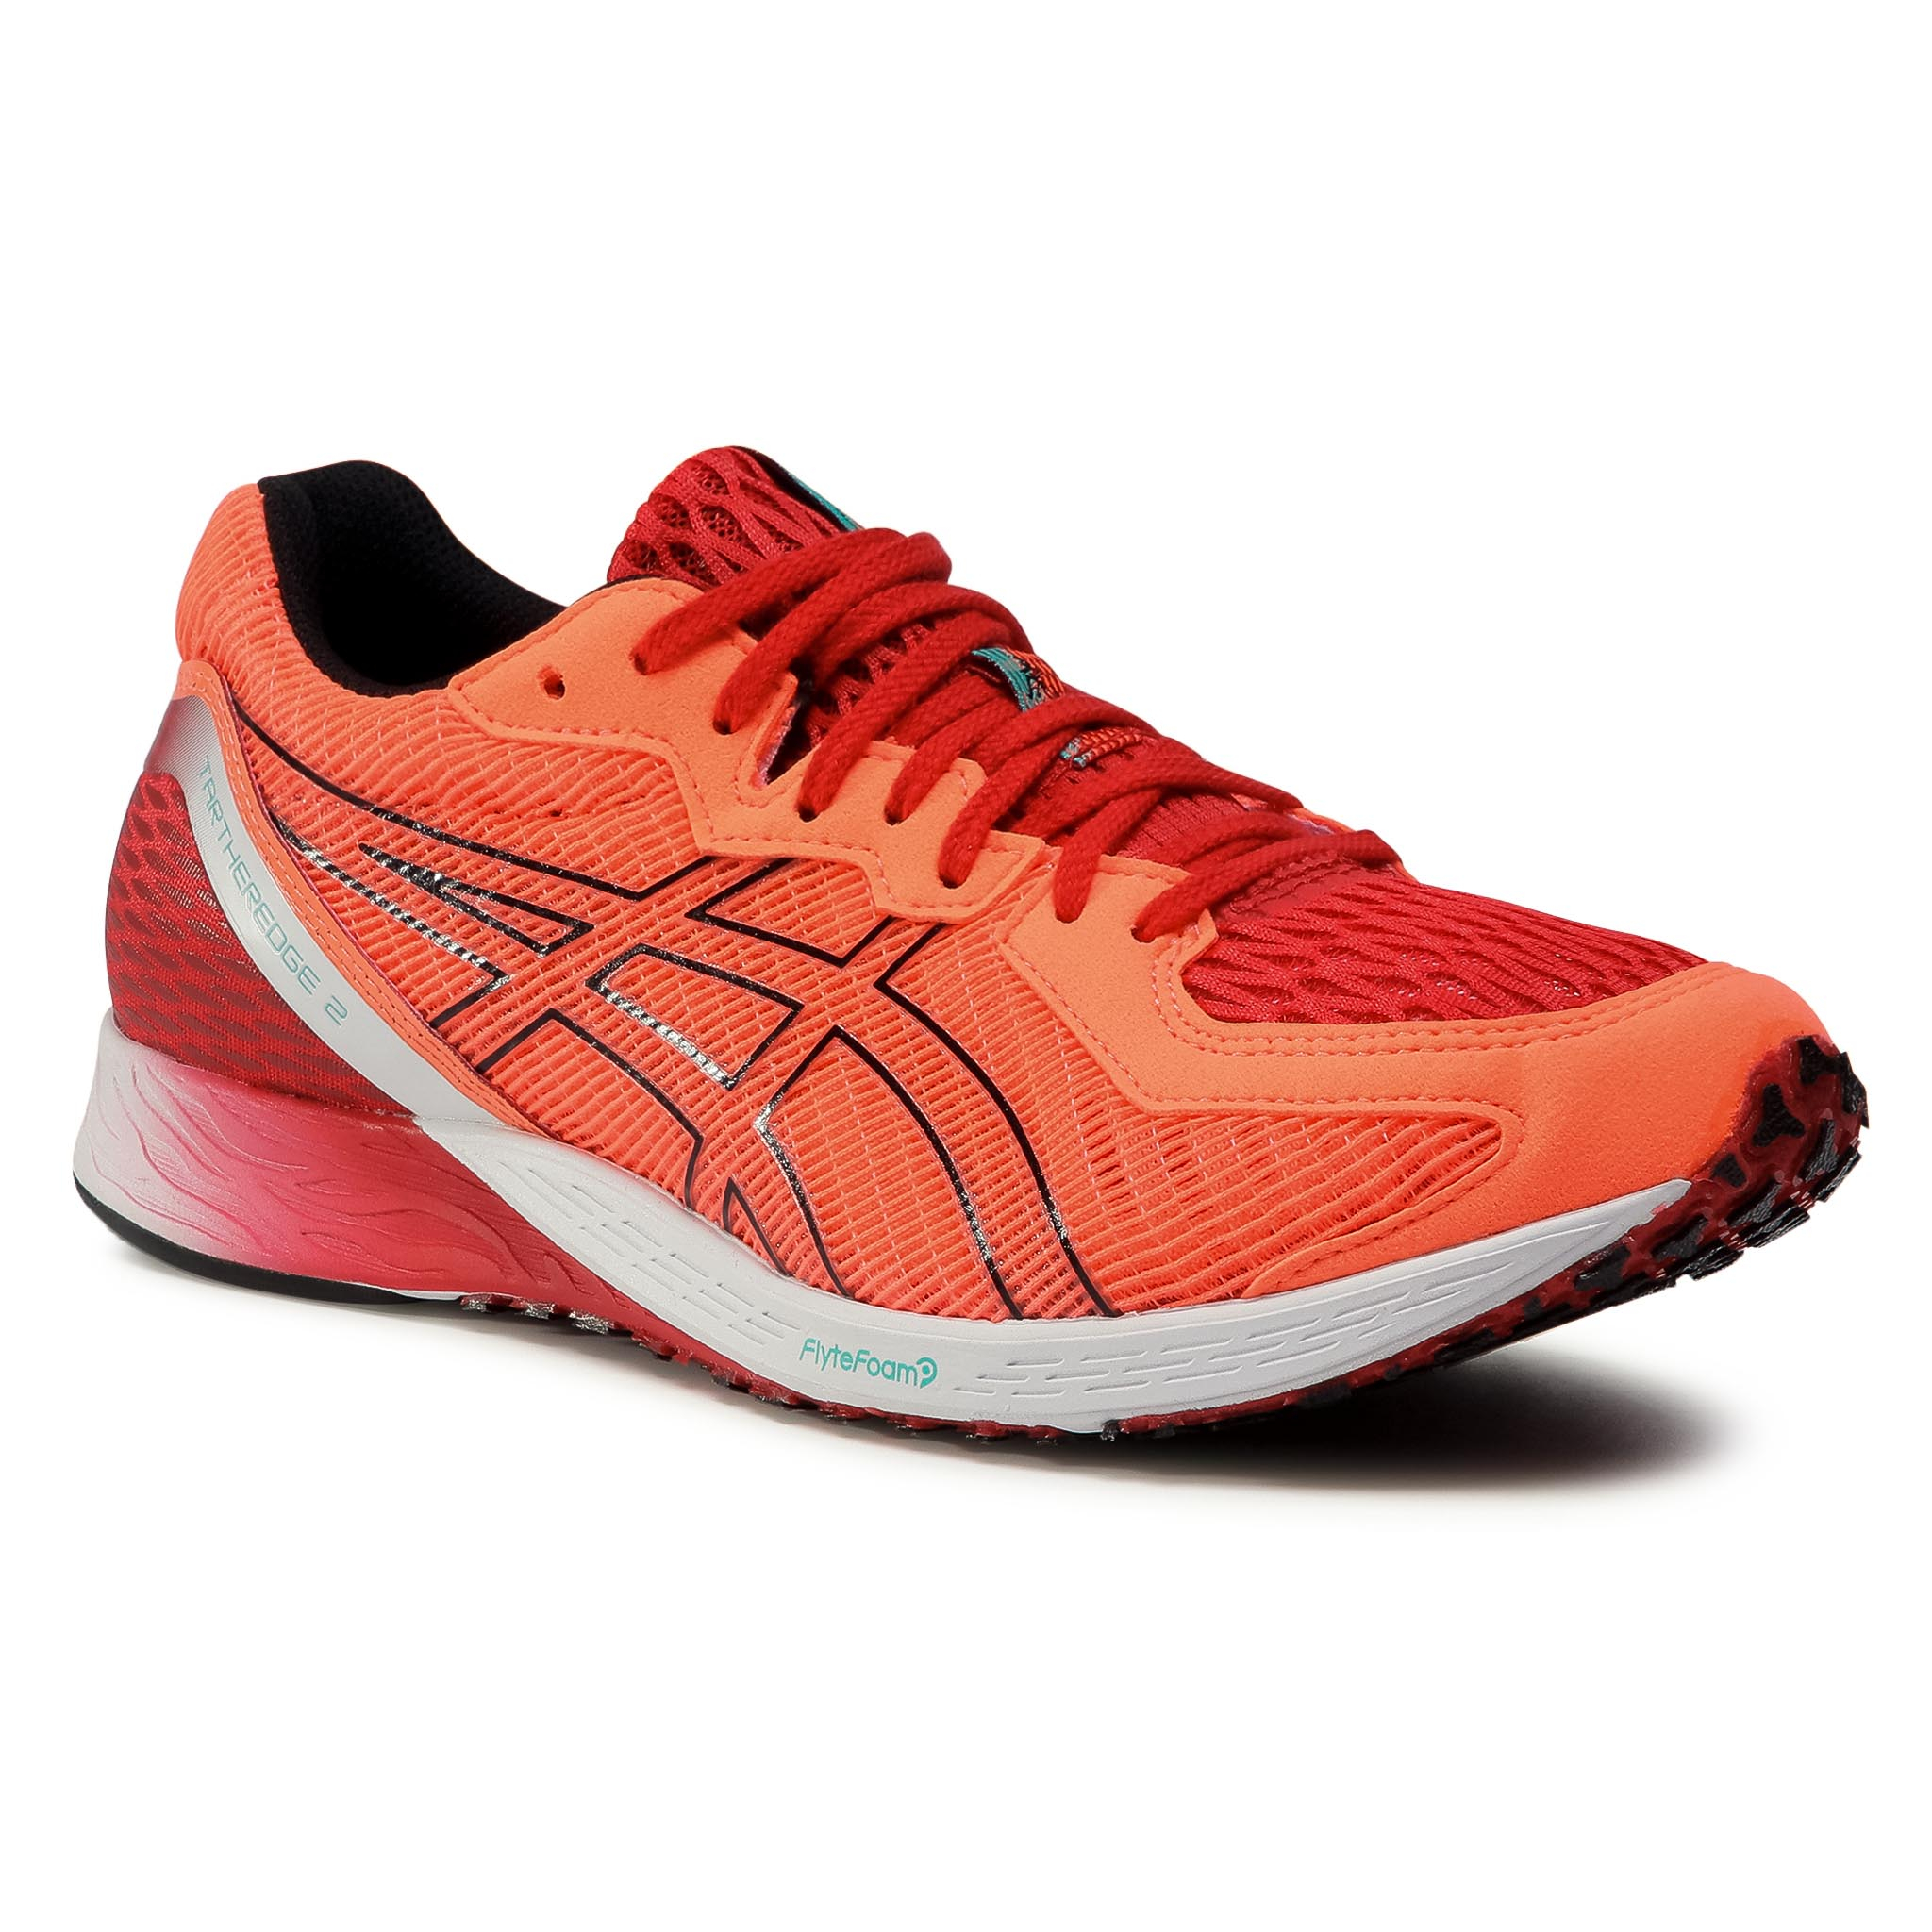 Skor ASICS - Tartheredge 2 1011A854  Sunrise Red/Black 600